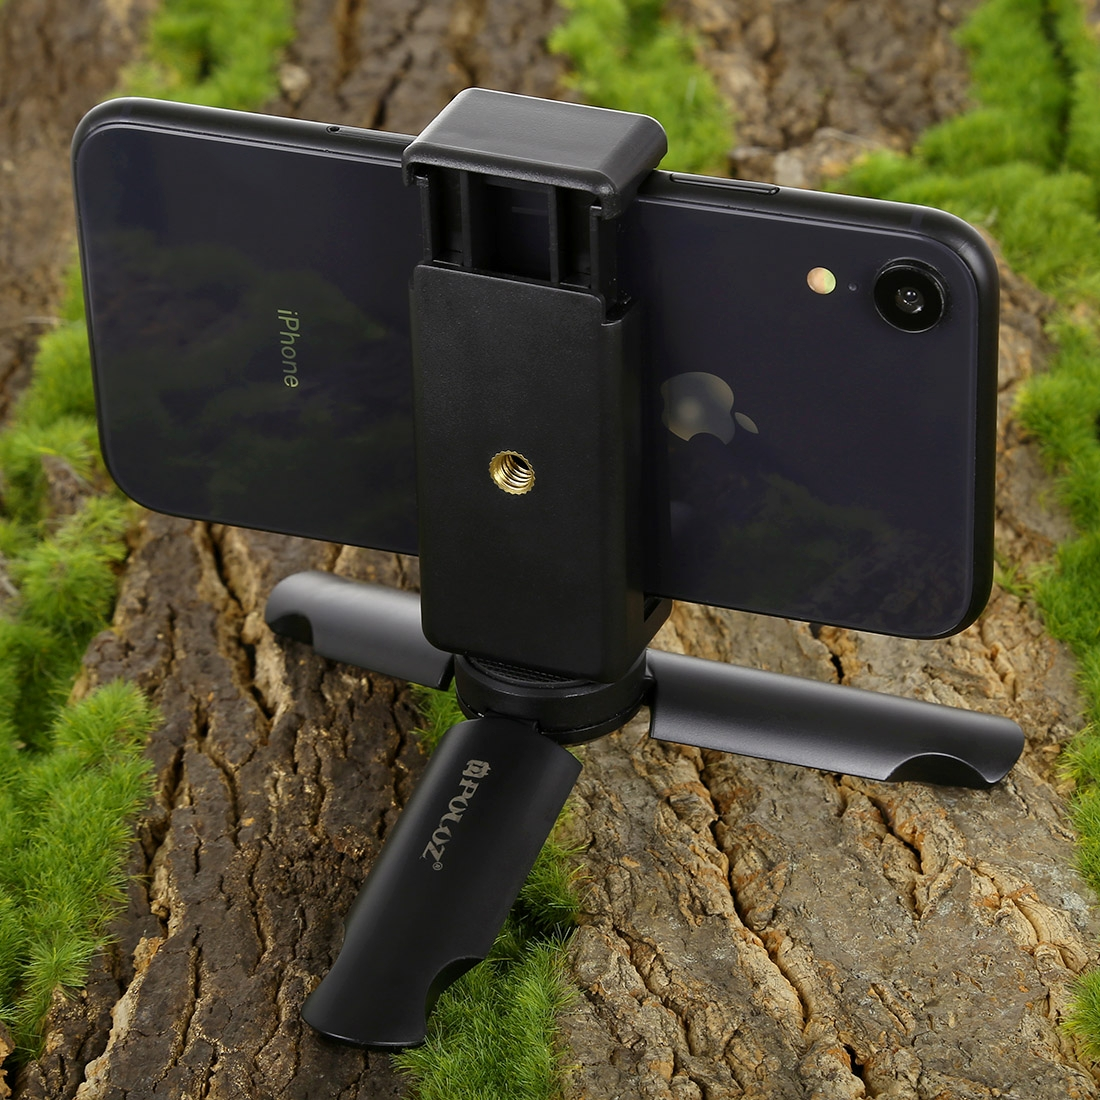 PULUZ Mini Plastic Tripod + Universal Phone Clamp Bracket, For iPhone, Galaxy, Huawei, Xiaomi, Sony, HTC, Google and other Smartphones